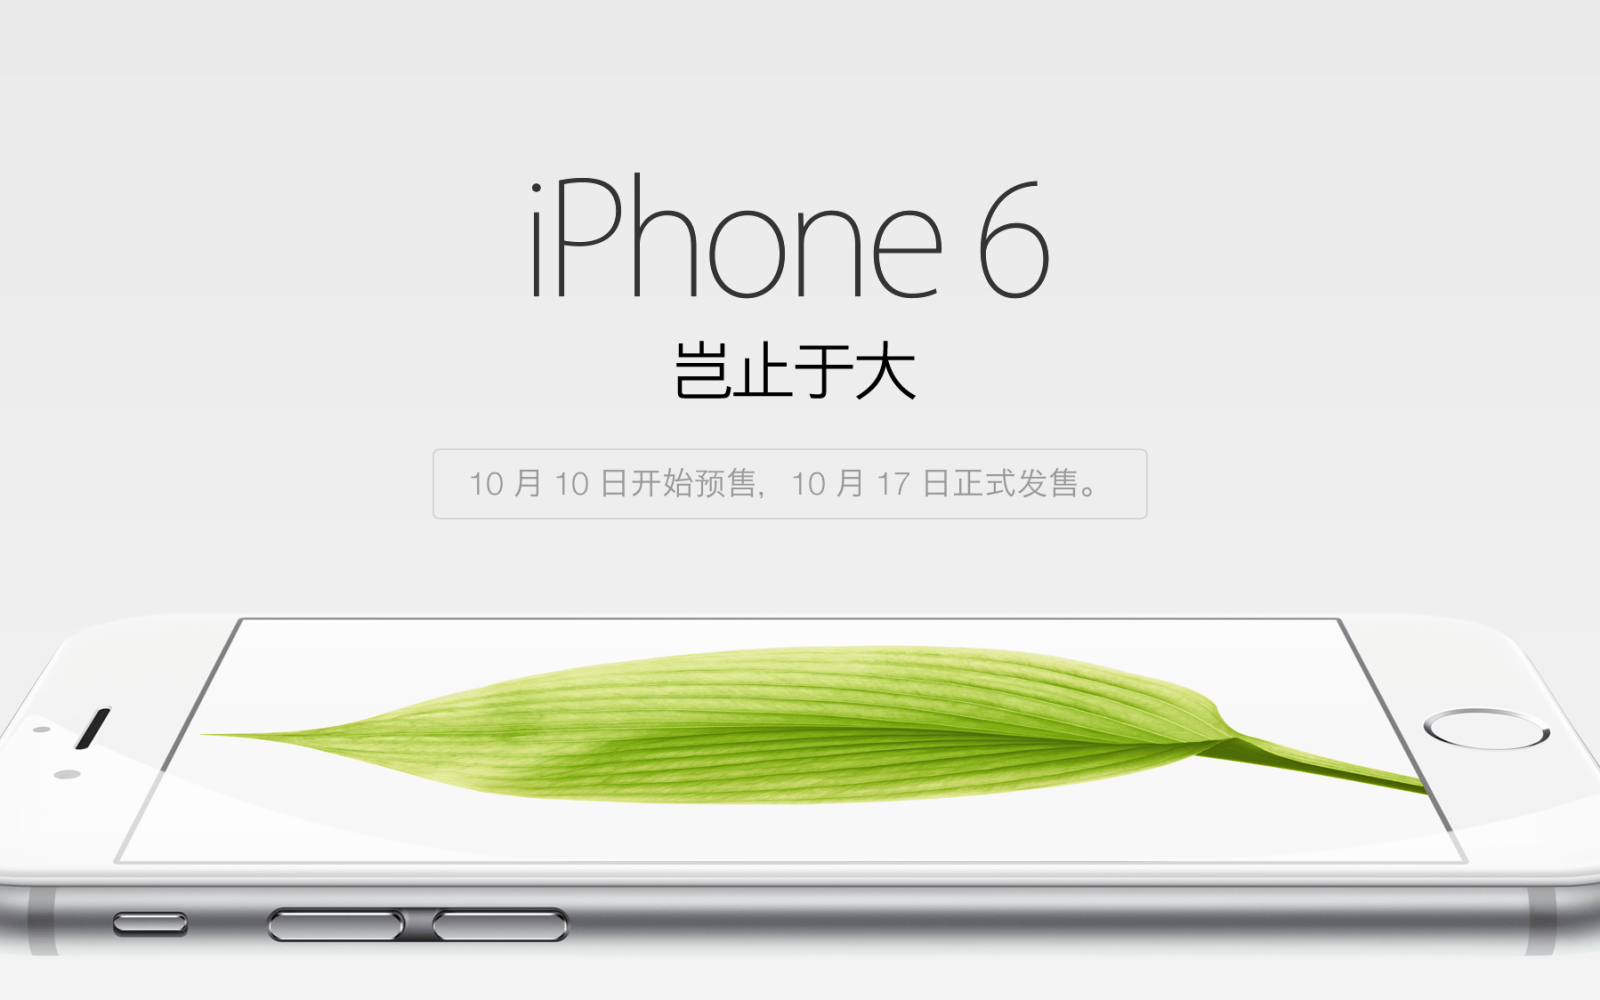 Chinese media reports 4 million iPhone 6 reservations, even split between iPhone 6 and iPhone 6 Plus